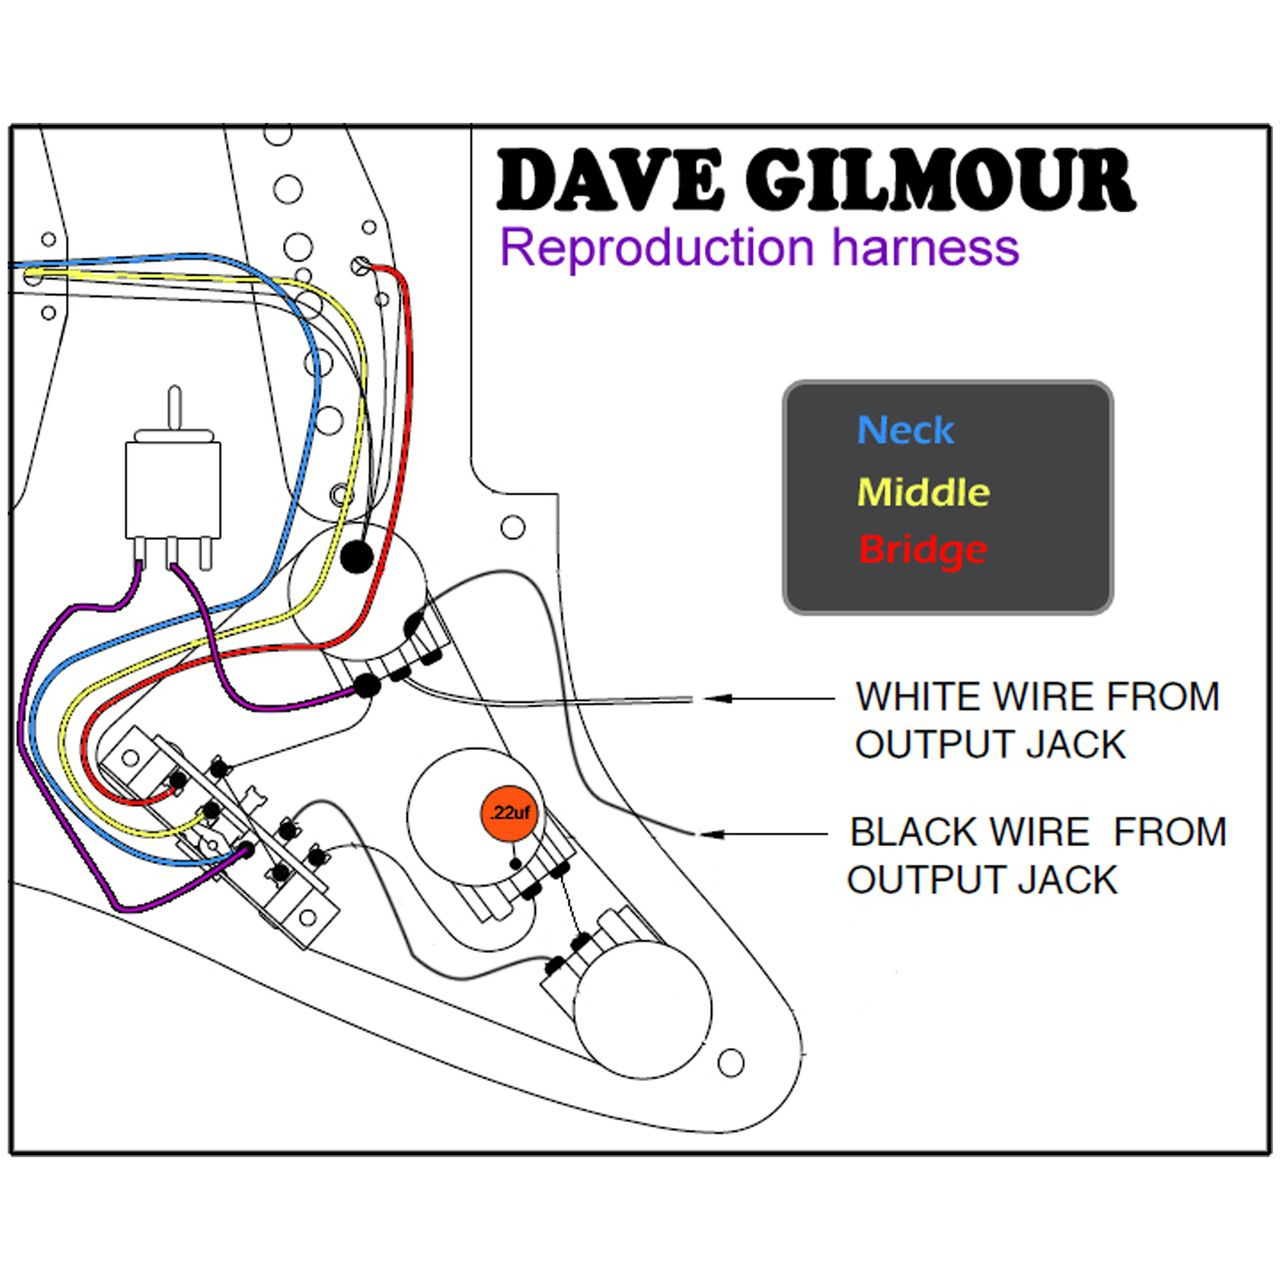 david gilmour fender strat wiring diagrams jimmie vaughan. Black Bedroom Furniture Sets. Home Design Ideas